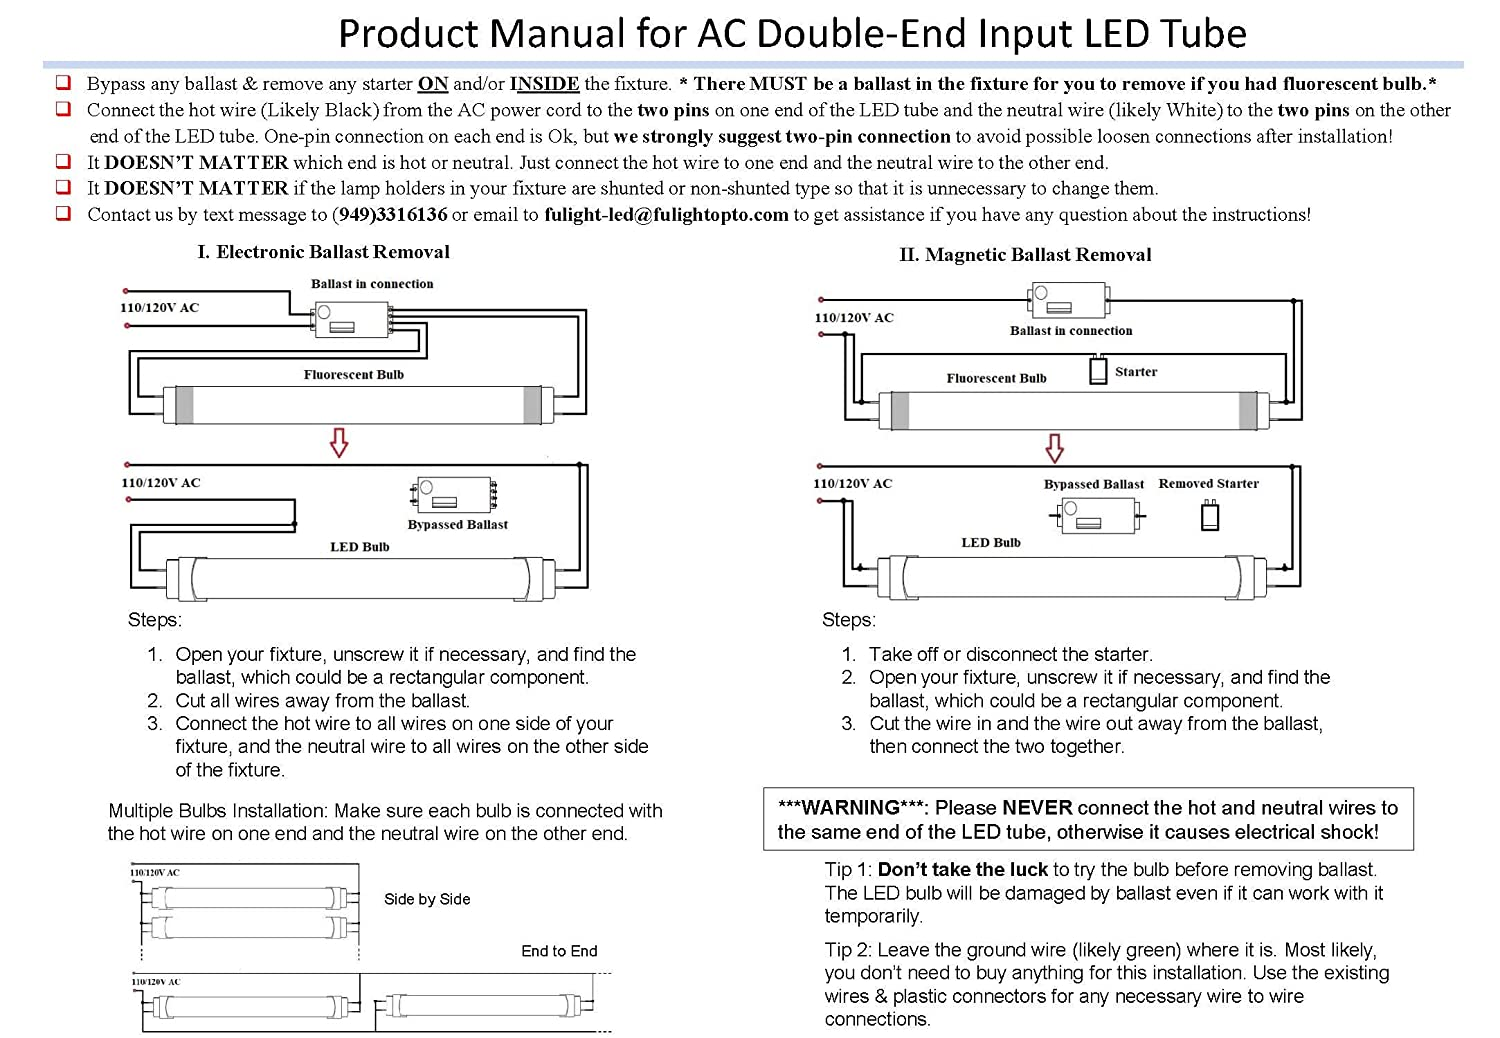 The Circuit Diagram Of 4w Fluorescent Lamp Fulight Rotatable F4t5 D Led Tube Light 6 Inch 2w Equivalent Daylight 6000k Double End Powered Frosted Cover 110 120vac